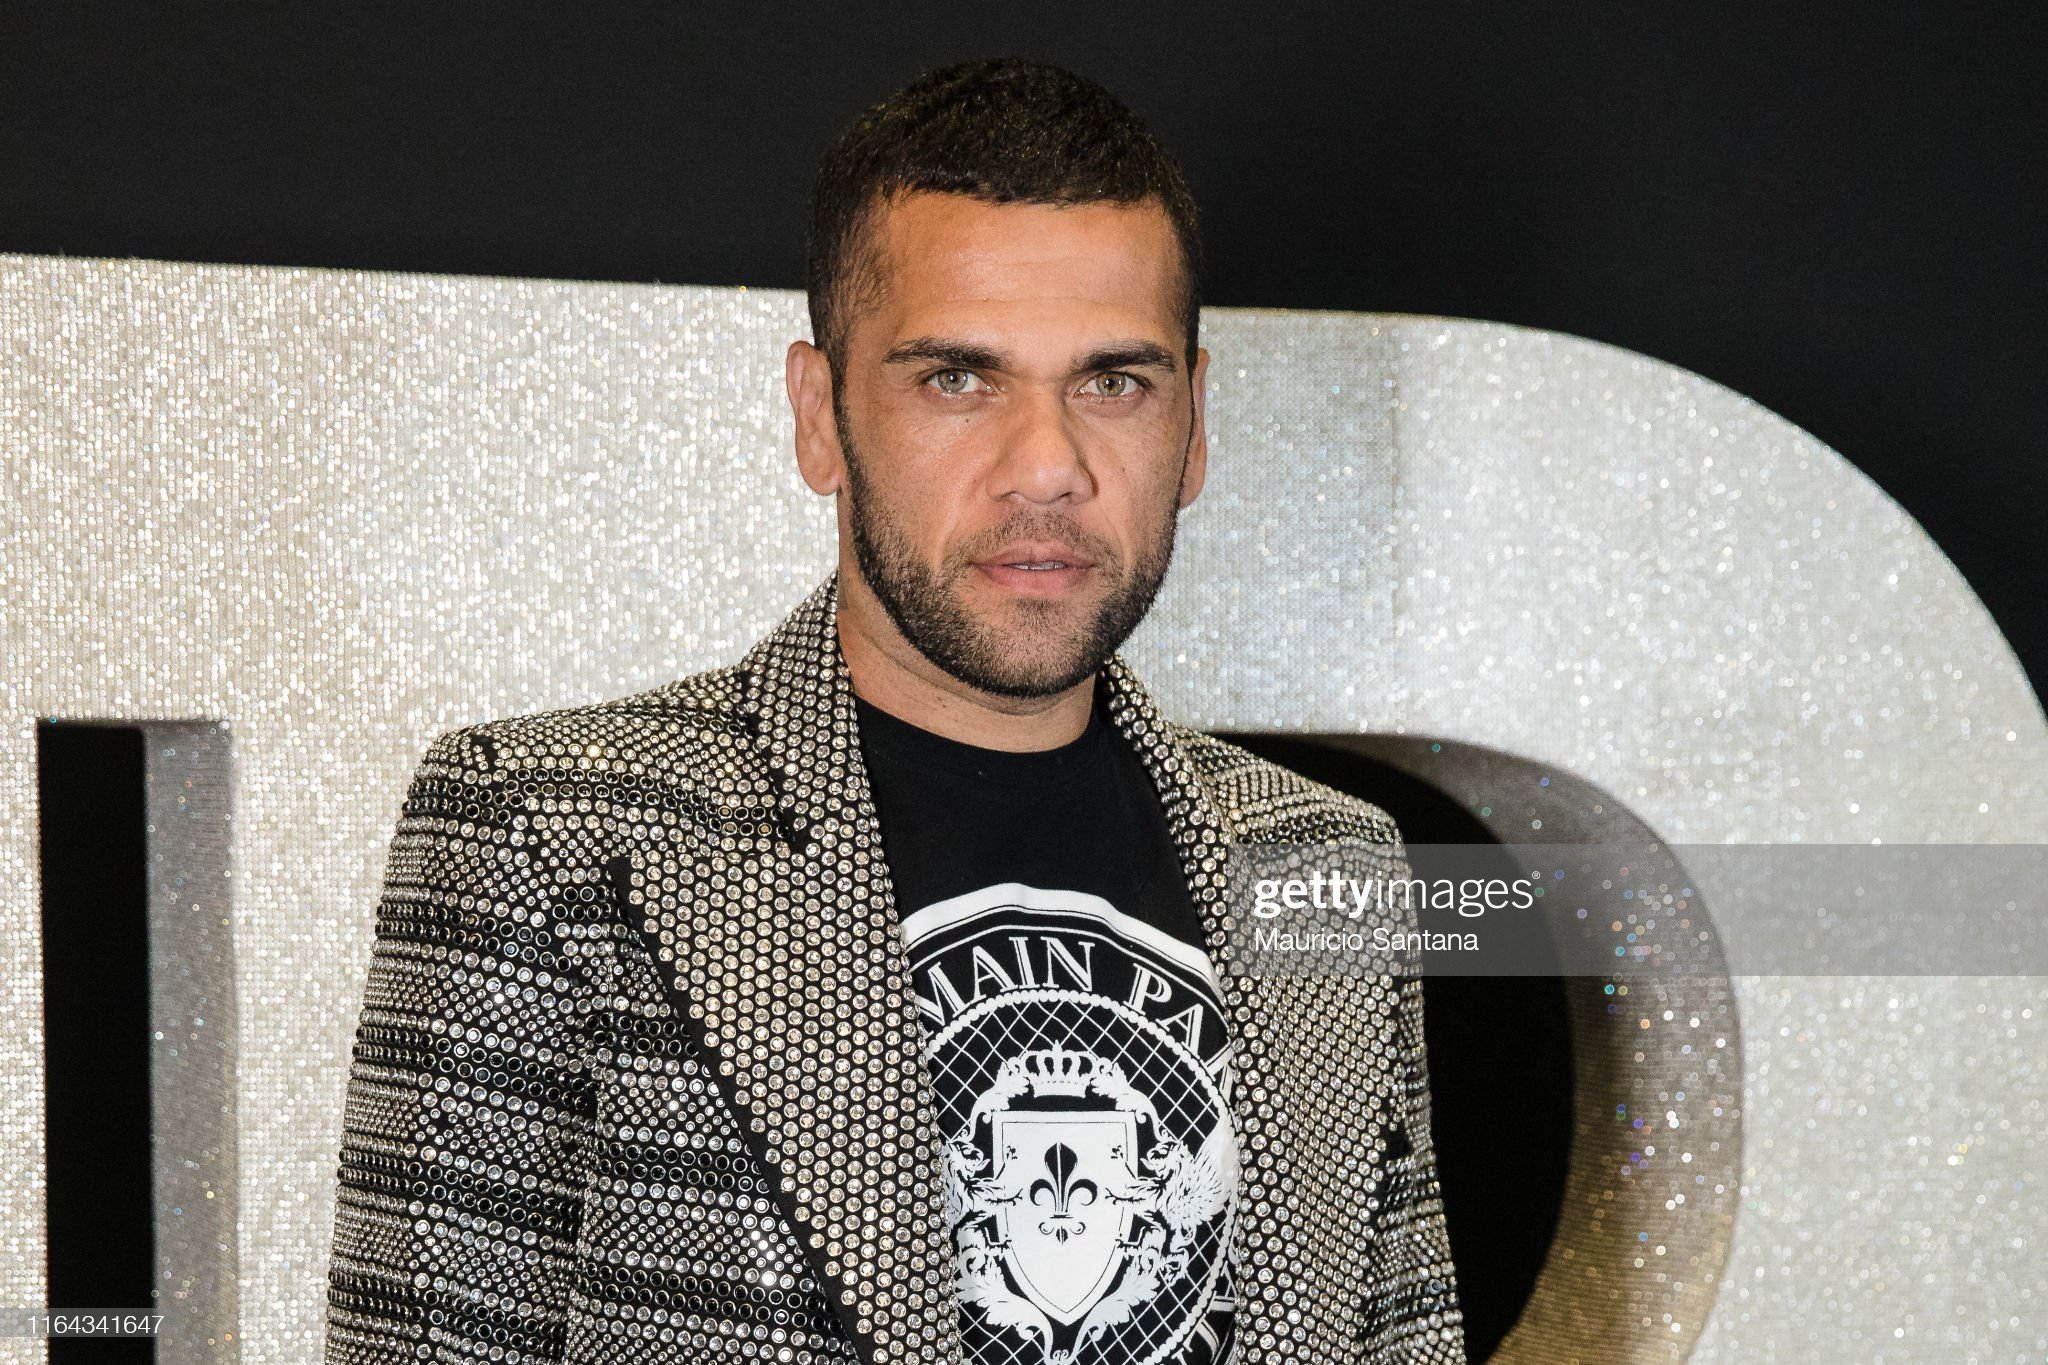 Ojos verdes - Famosas y famosos con los ojos de color VERDE Dani-alves-attends-the-balmain-party-at-cidade-jardim-shopping-on-26-picture-id1164341647?s=2048x2048